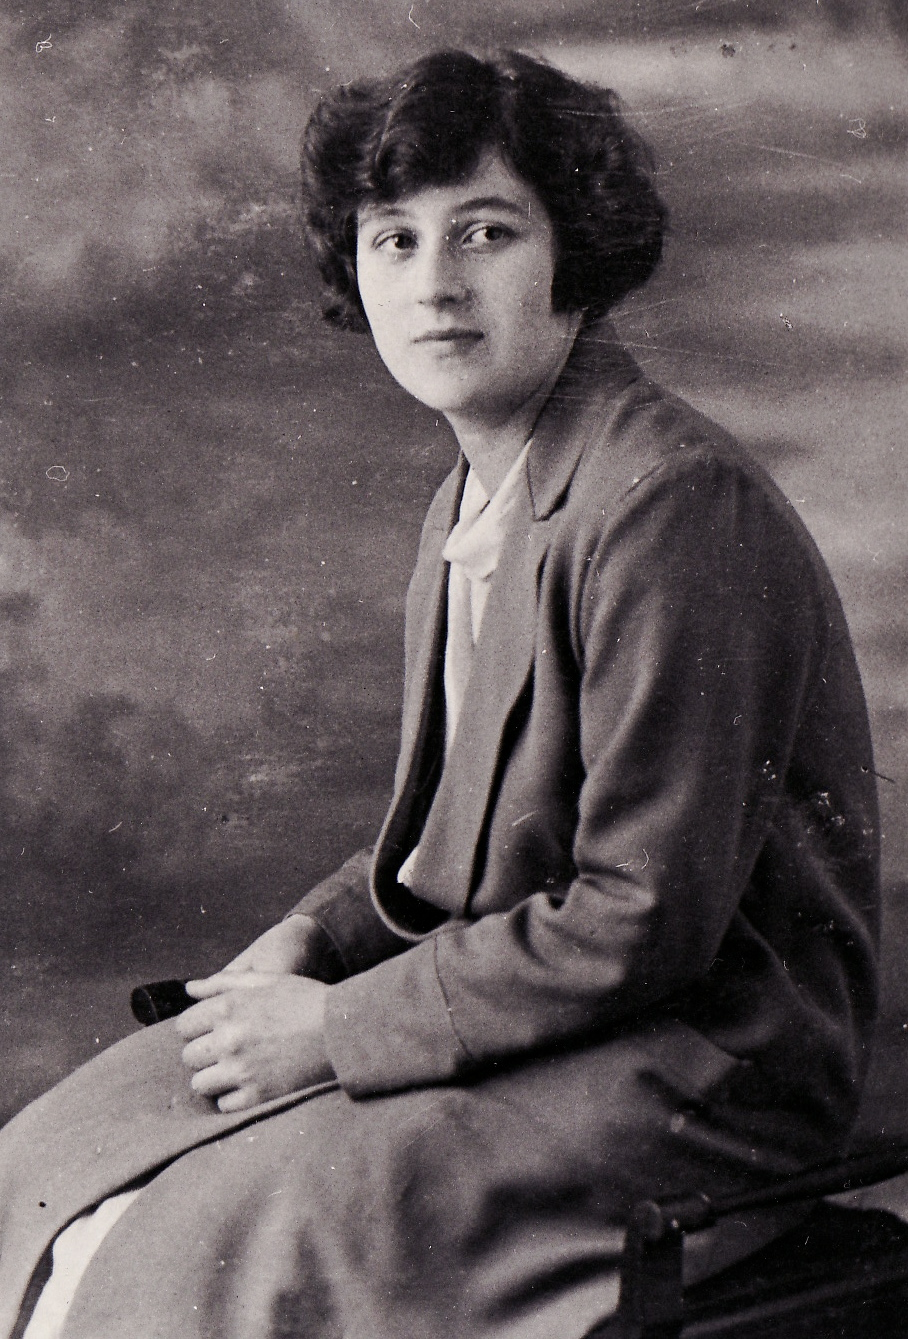 So many of my stories start here, with my grandmother, Betsy Burgess. This photo was taken shortly before she left England in 1926, age 19.